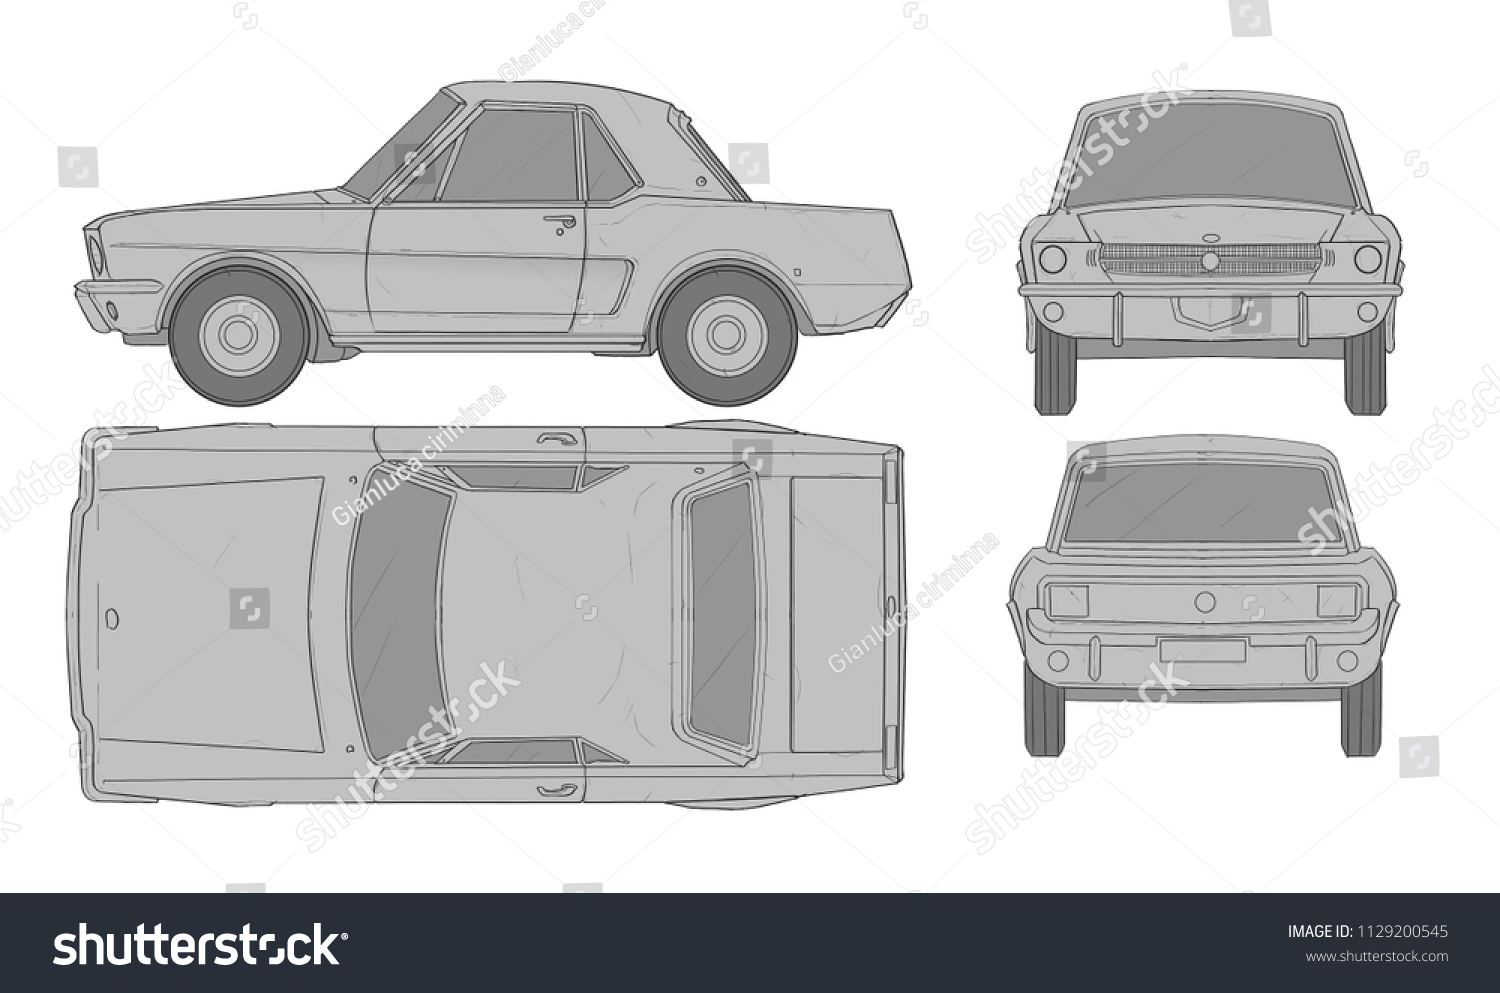 Cartoon Car Blueprint For 3d Modeling